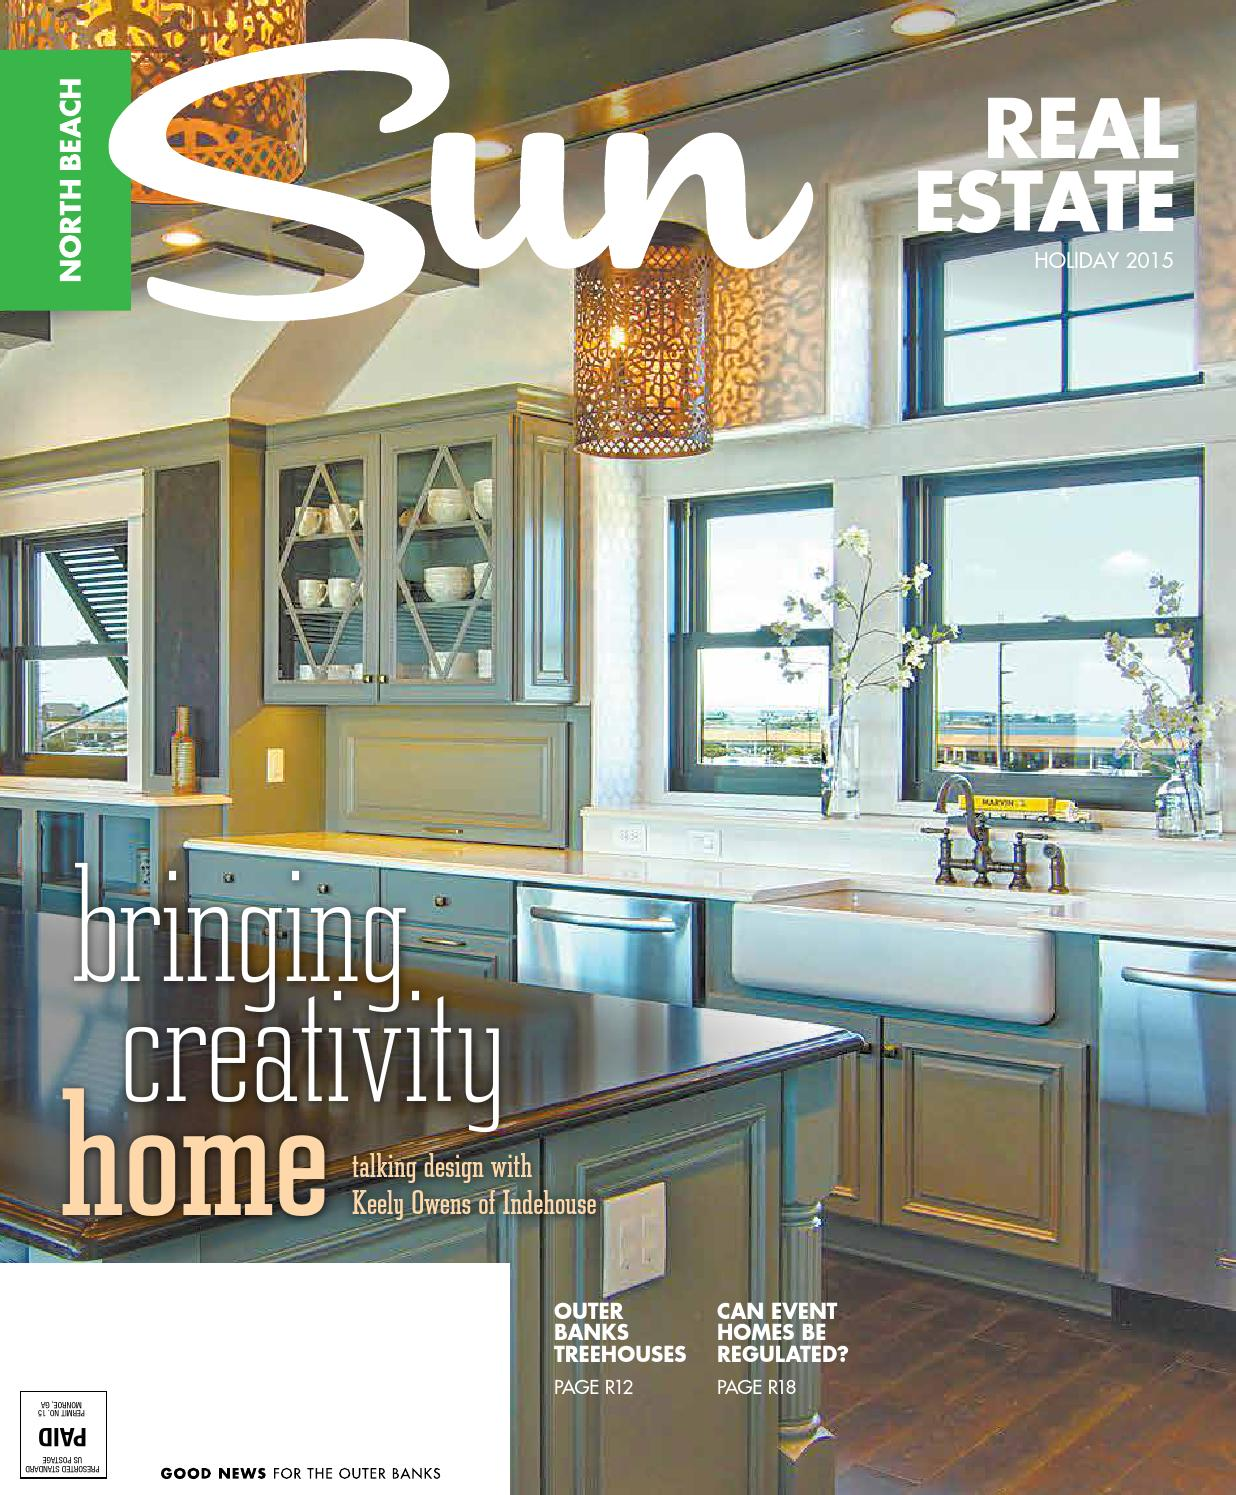 North beach sun real estate holiday 2015 by north beach sun issuu ccuart Image collections